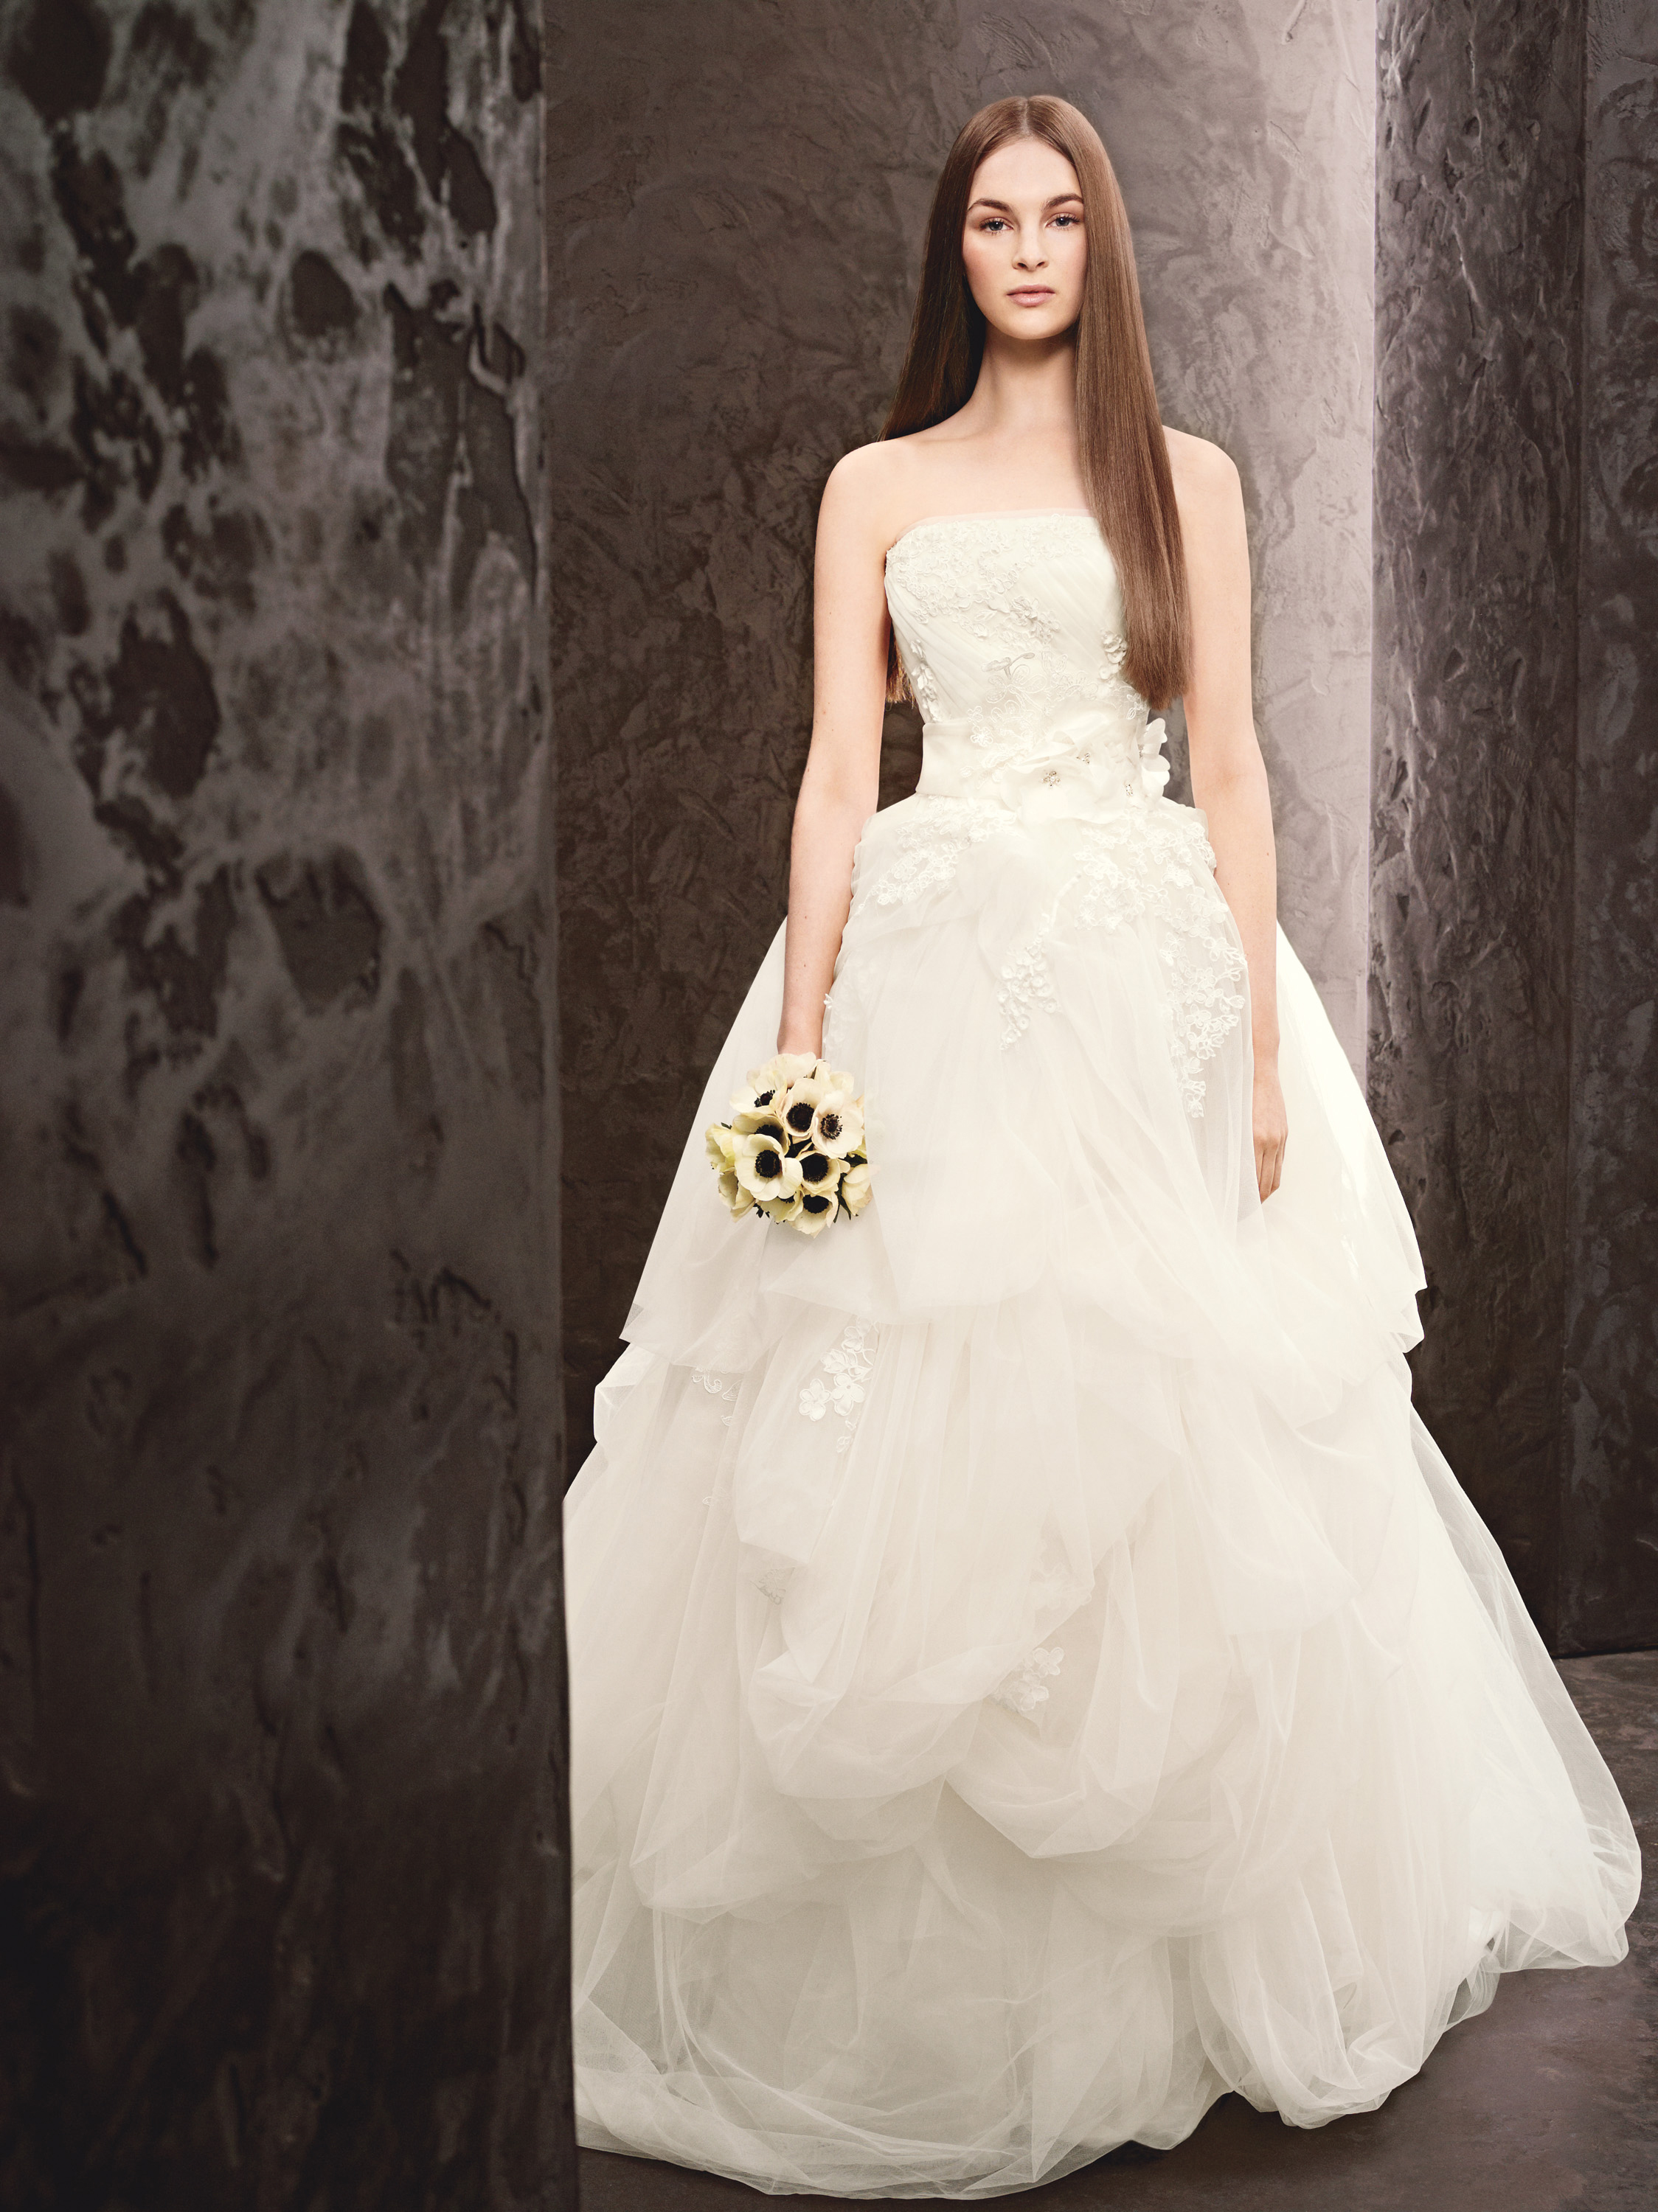 Wedding dresses designs photos pictures pics images vera for Vera wang wedding dress used